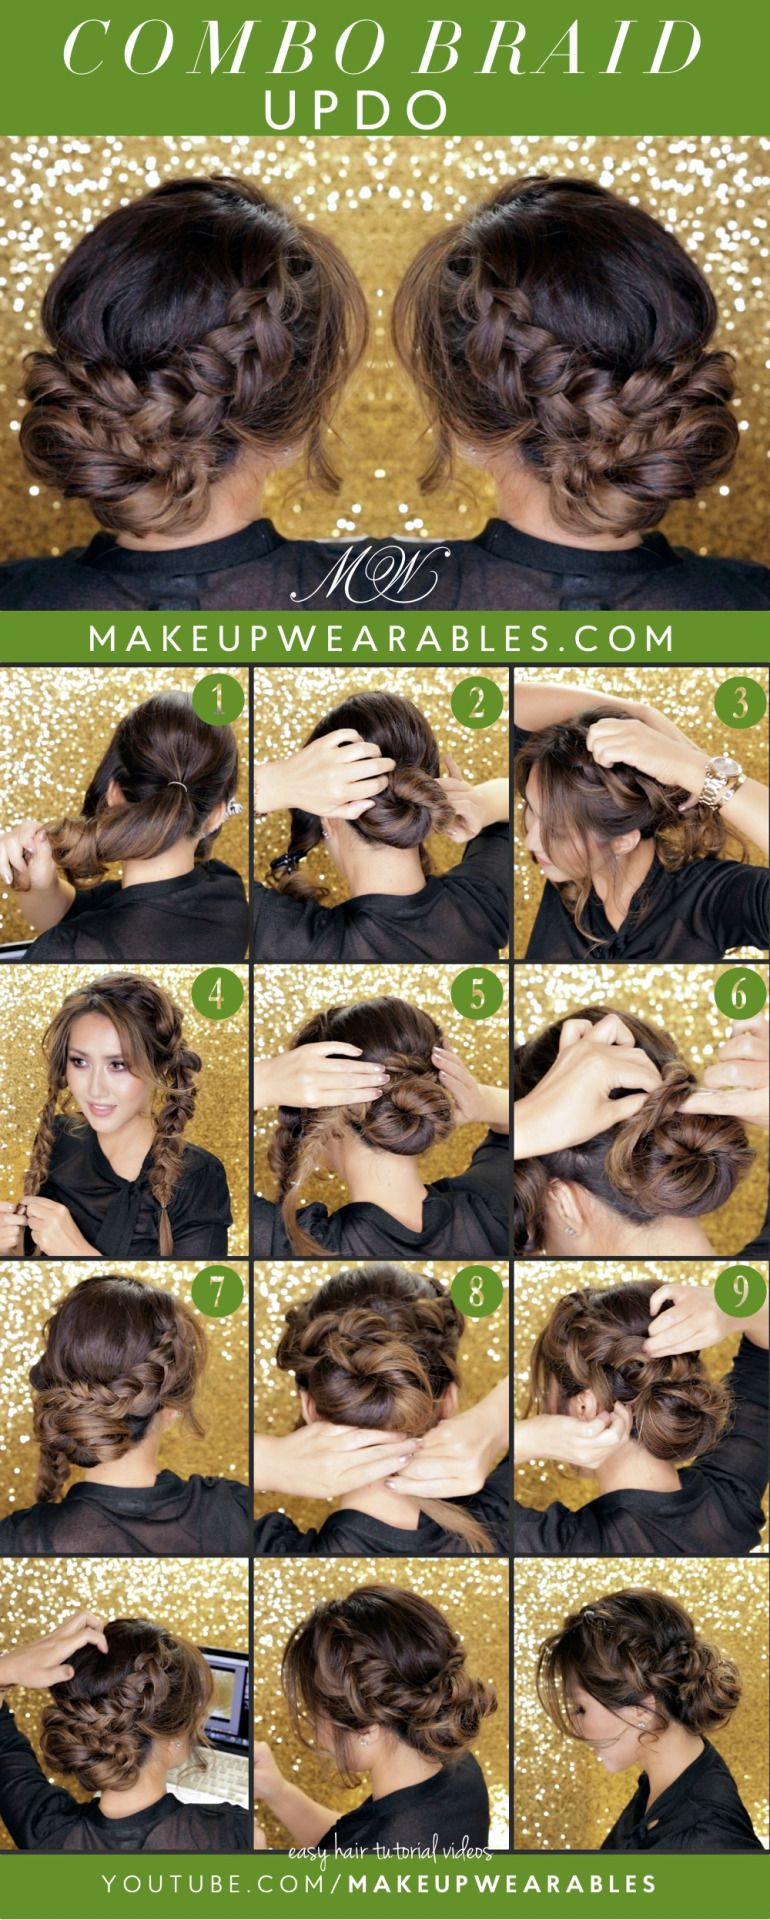 Makeupwearableshairstyles Hair Styles Long Hair Styles Easy Updos For Long Hair